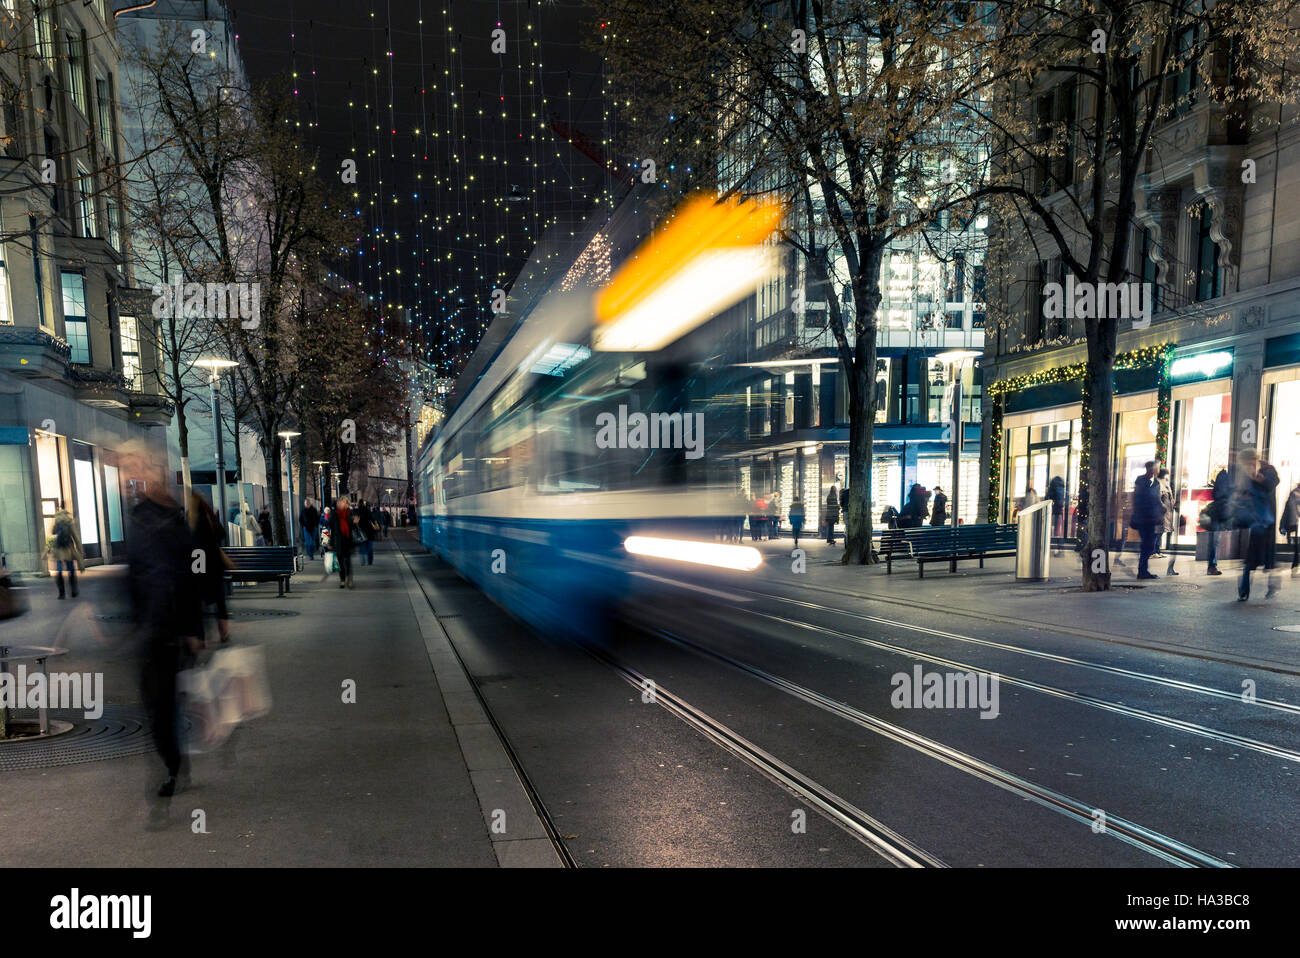 Christmas shopping in the decorated Zurich Bahnhofstrasse - 3 - Stock Image